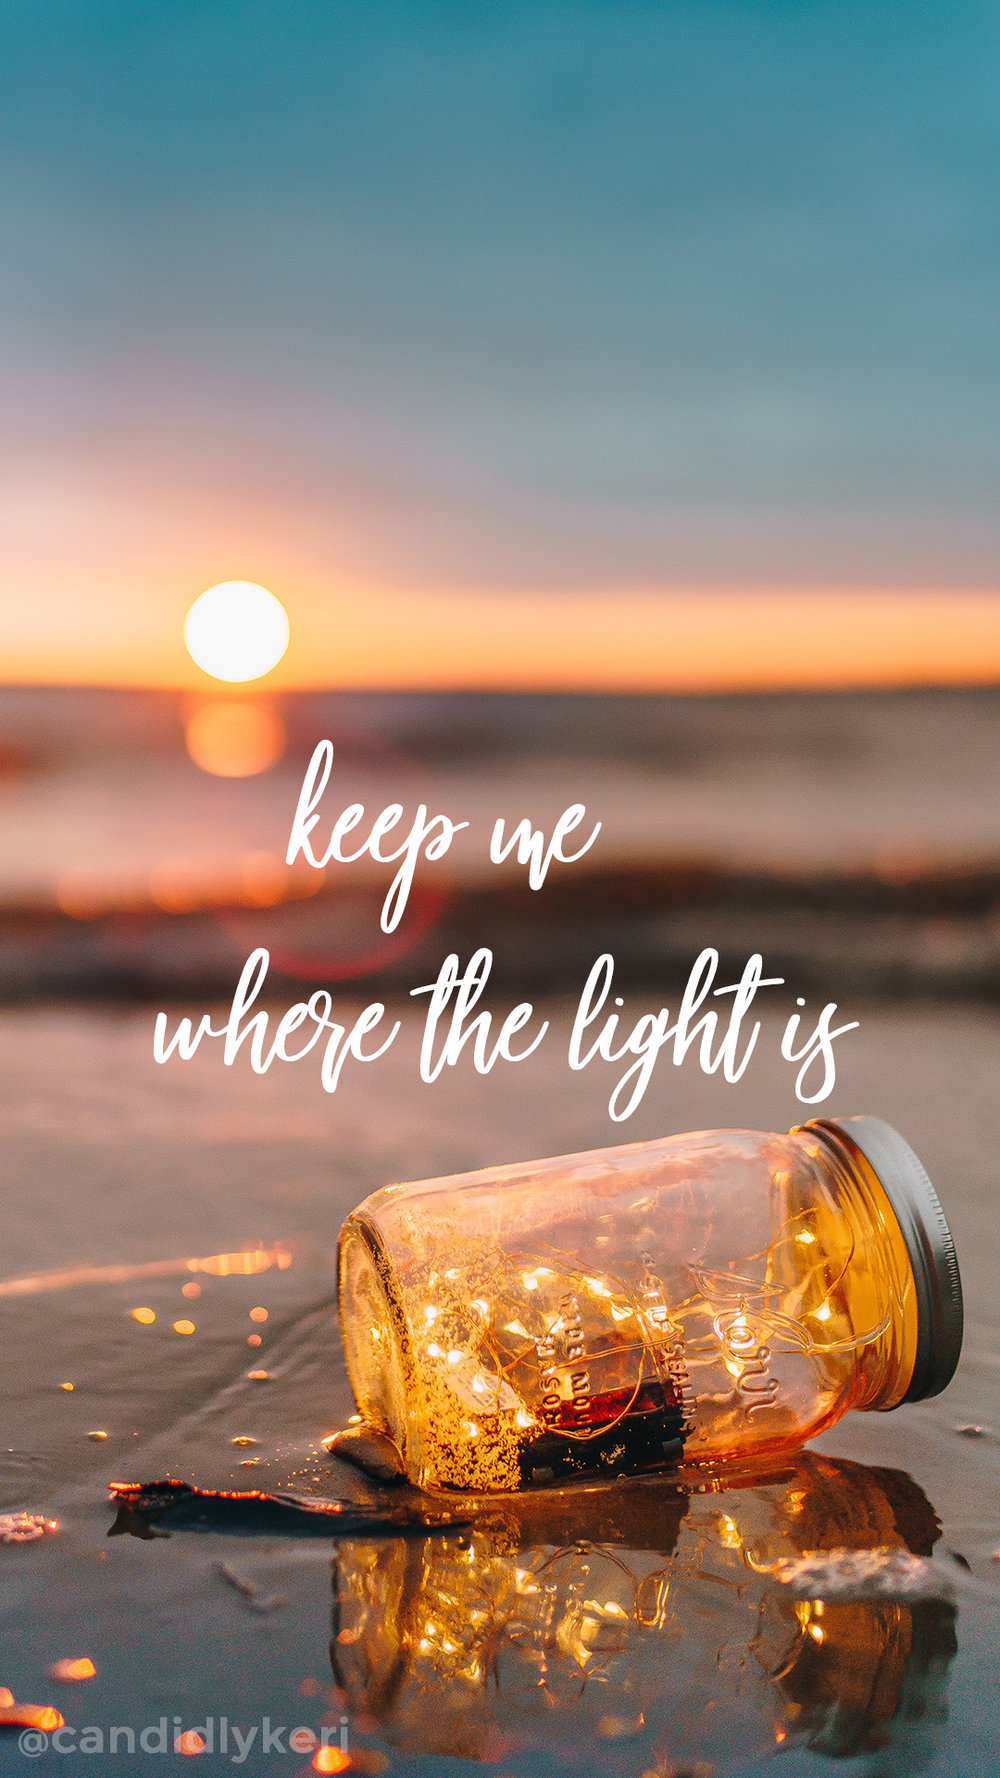 Keep me where the light is